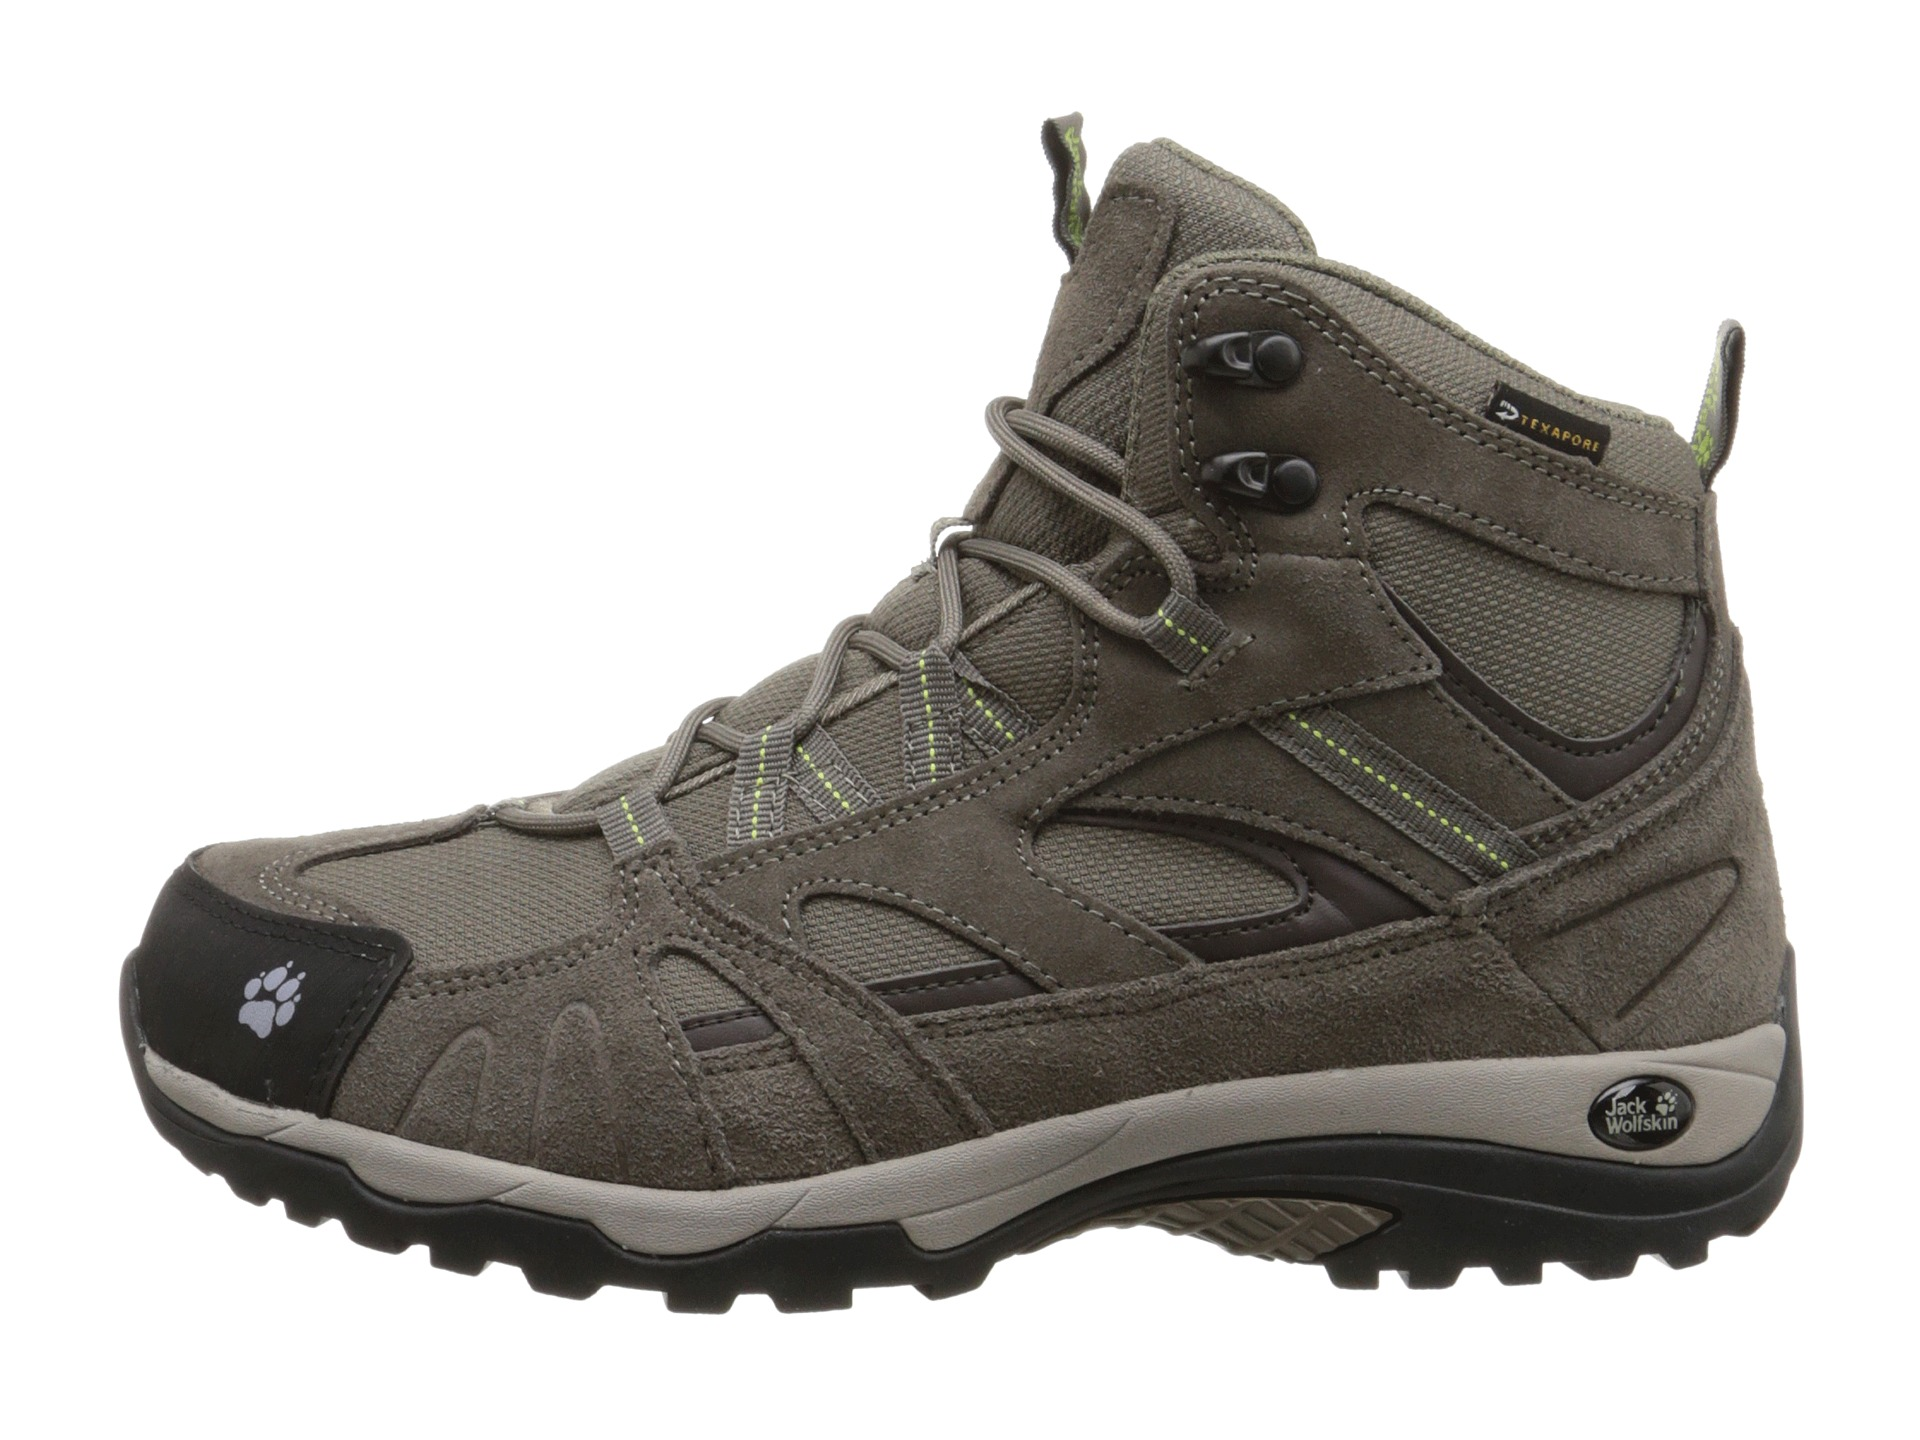 Jack Wolfskin Vojo Hike Mid Texapore Parrot Green Zappos